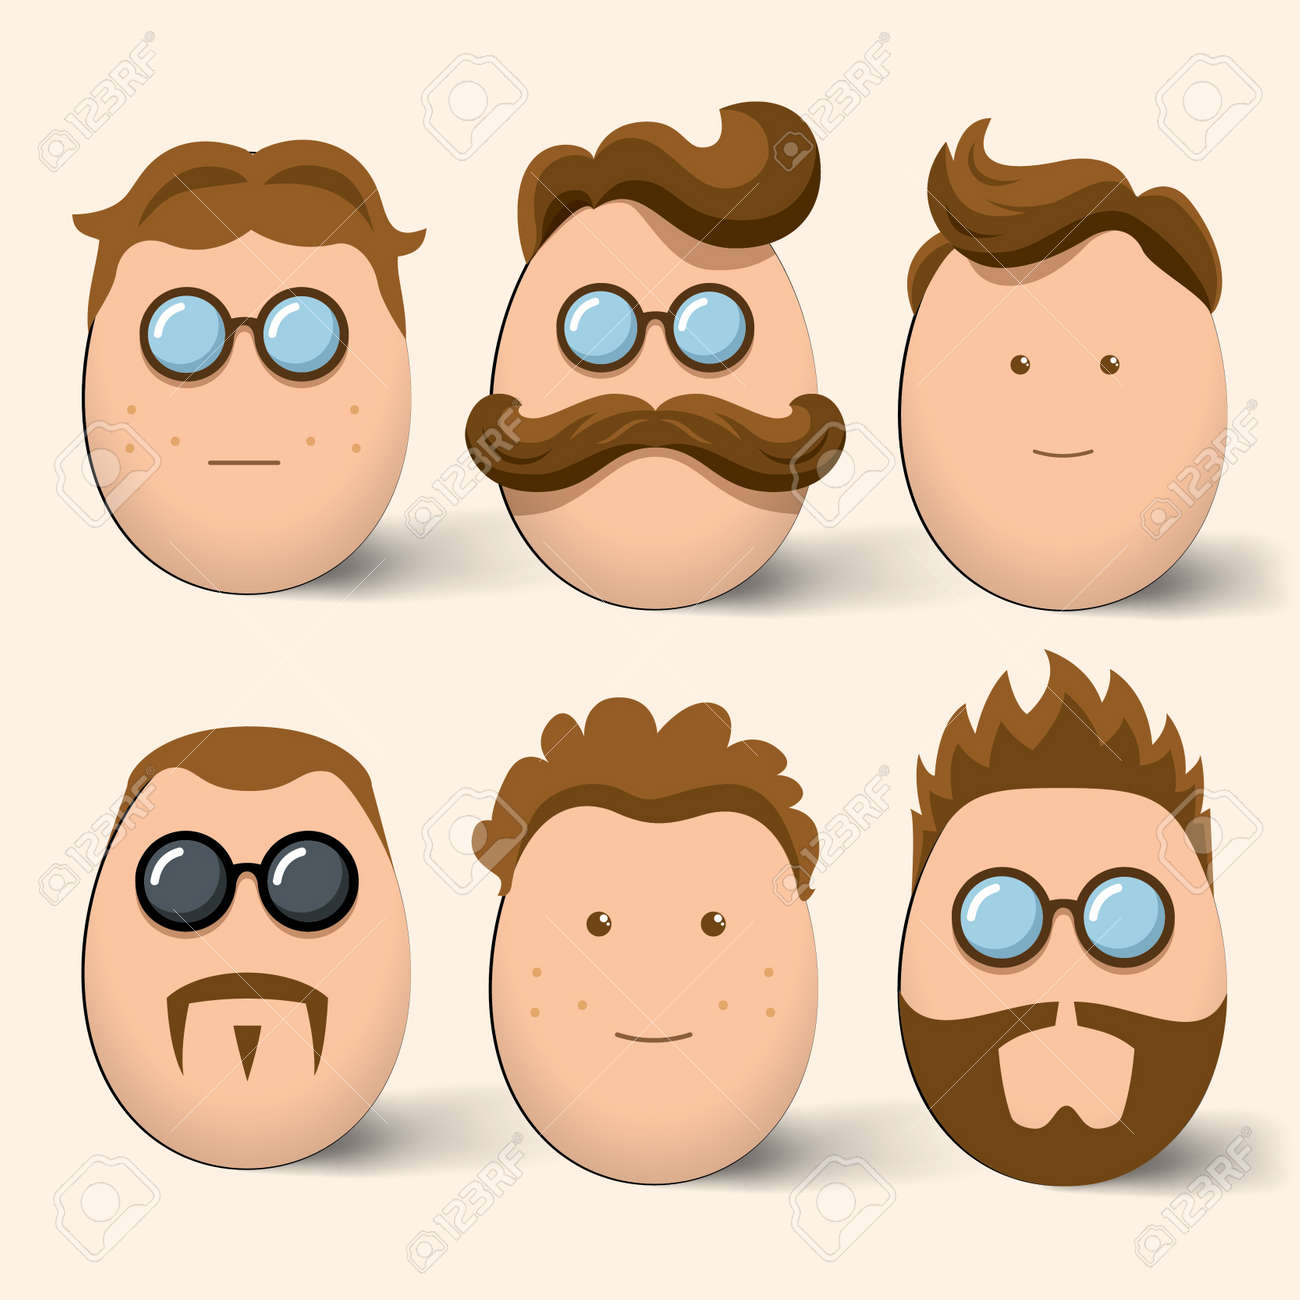 Egg characters face set Stock Vector - 18981981